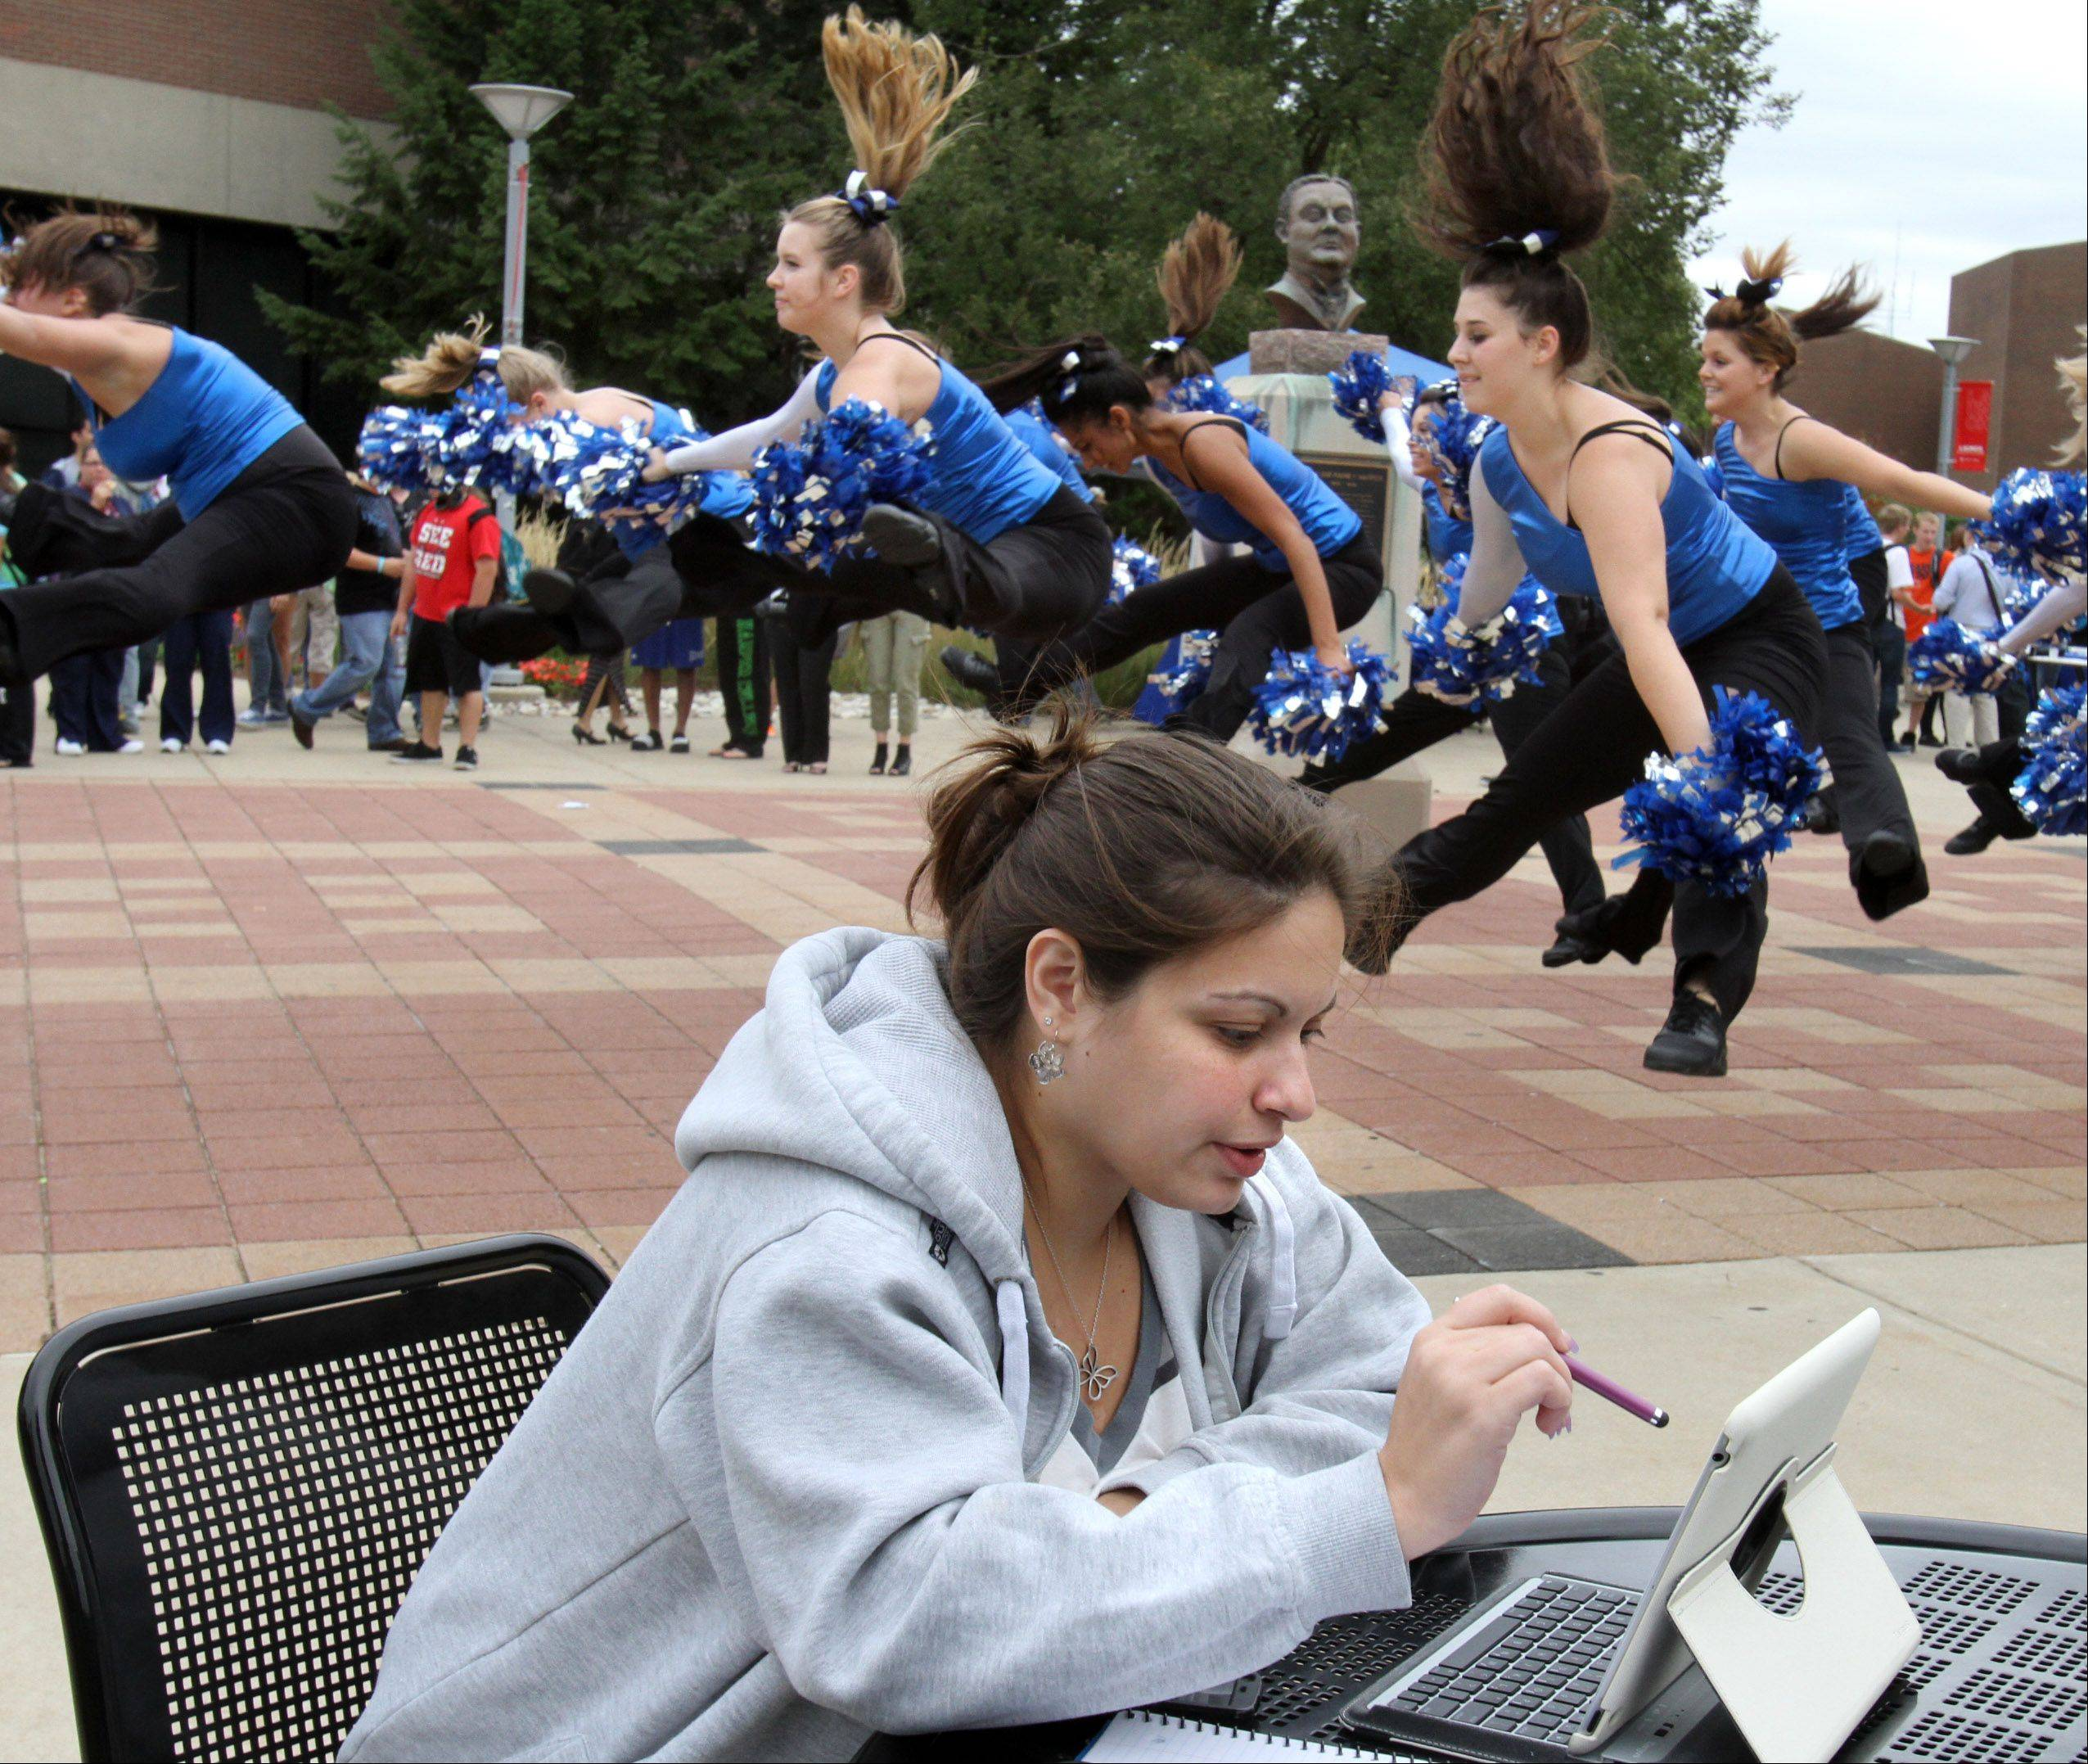 Jennifer Strang of Hoffman Estates studies math while the Harper College pom and dance team preforms at the college's Hullabaloo celebration on Thursday.